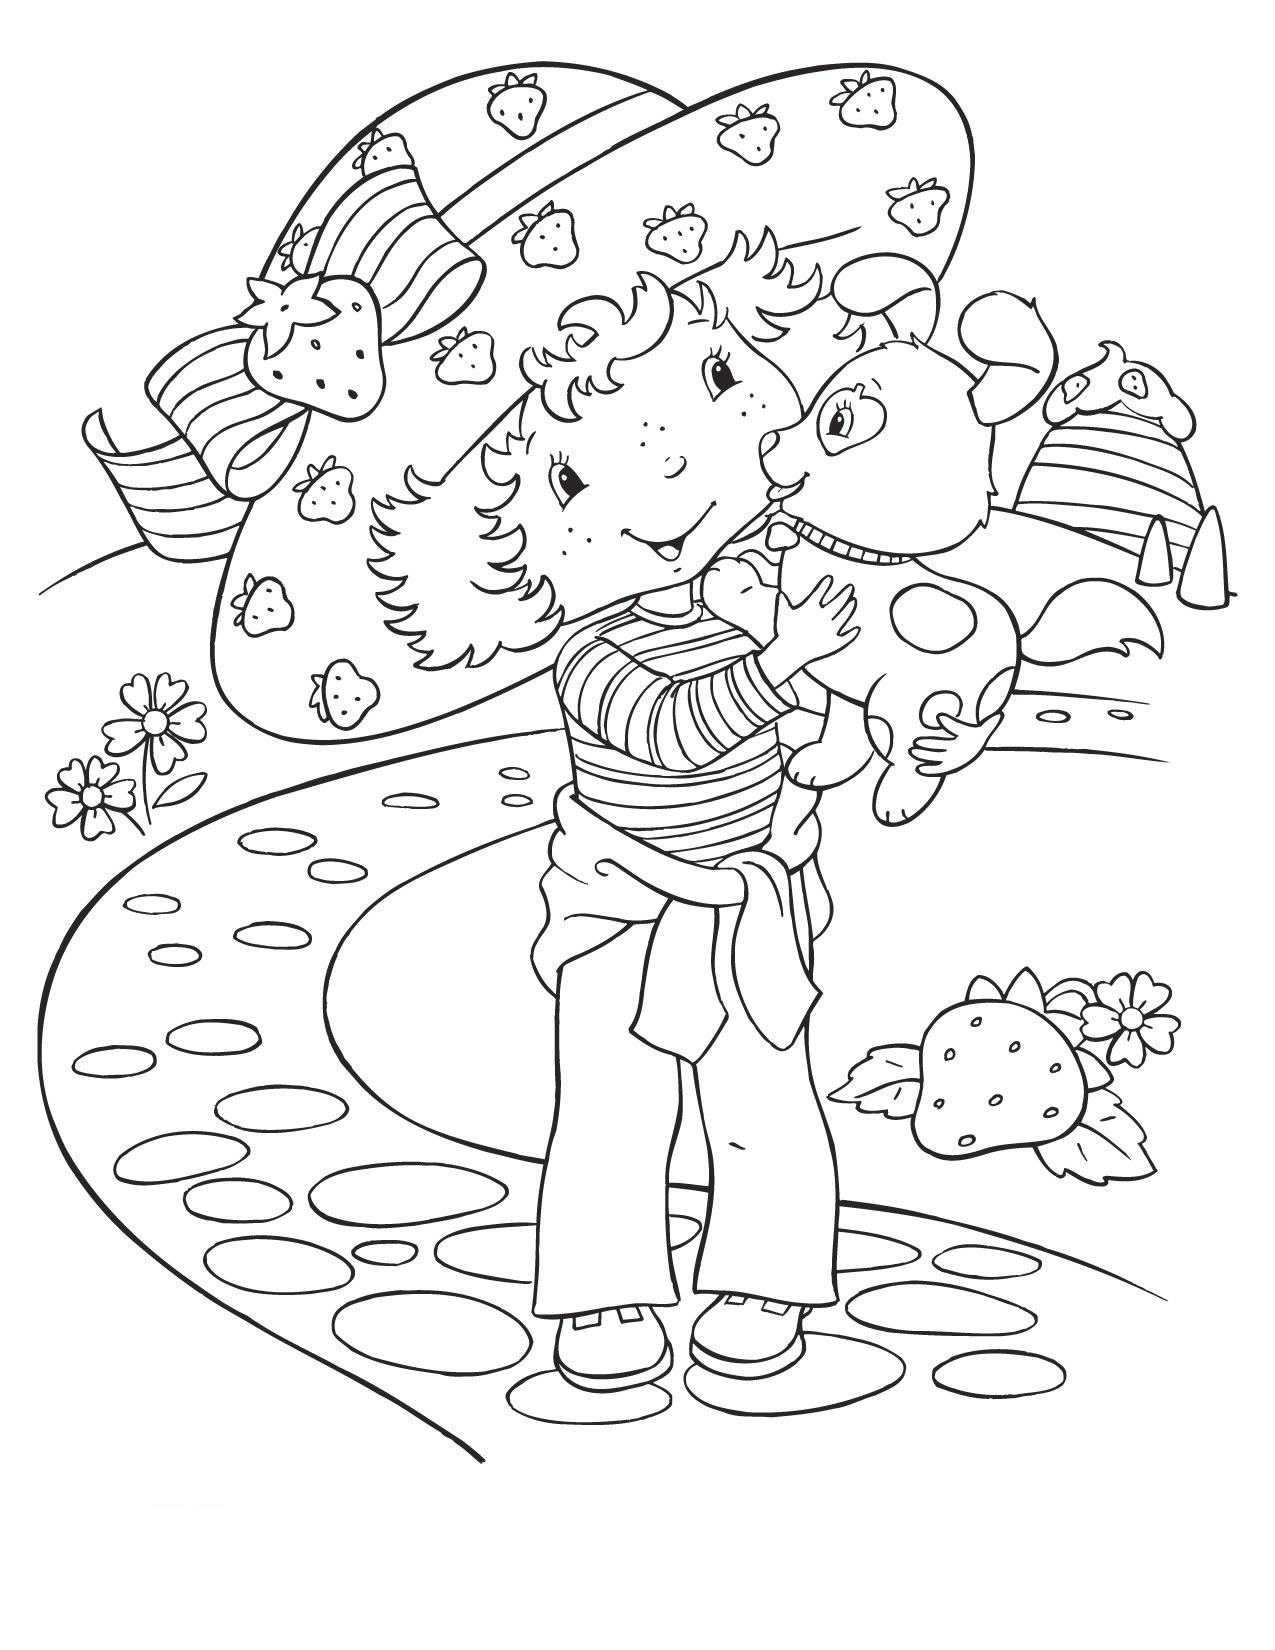 pupcake the dog coloring pages - photo#21